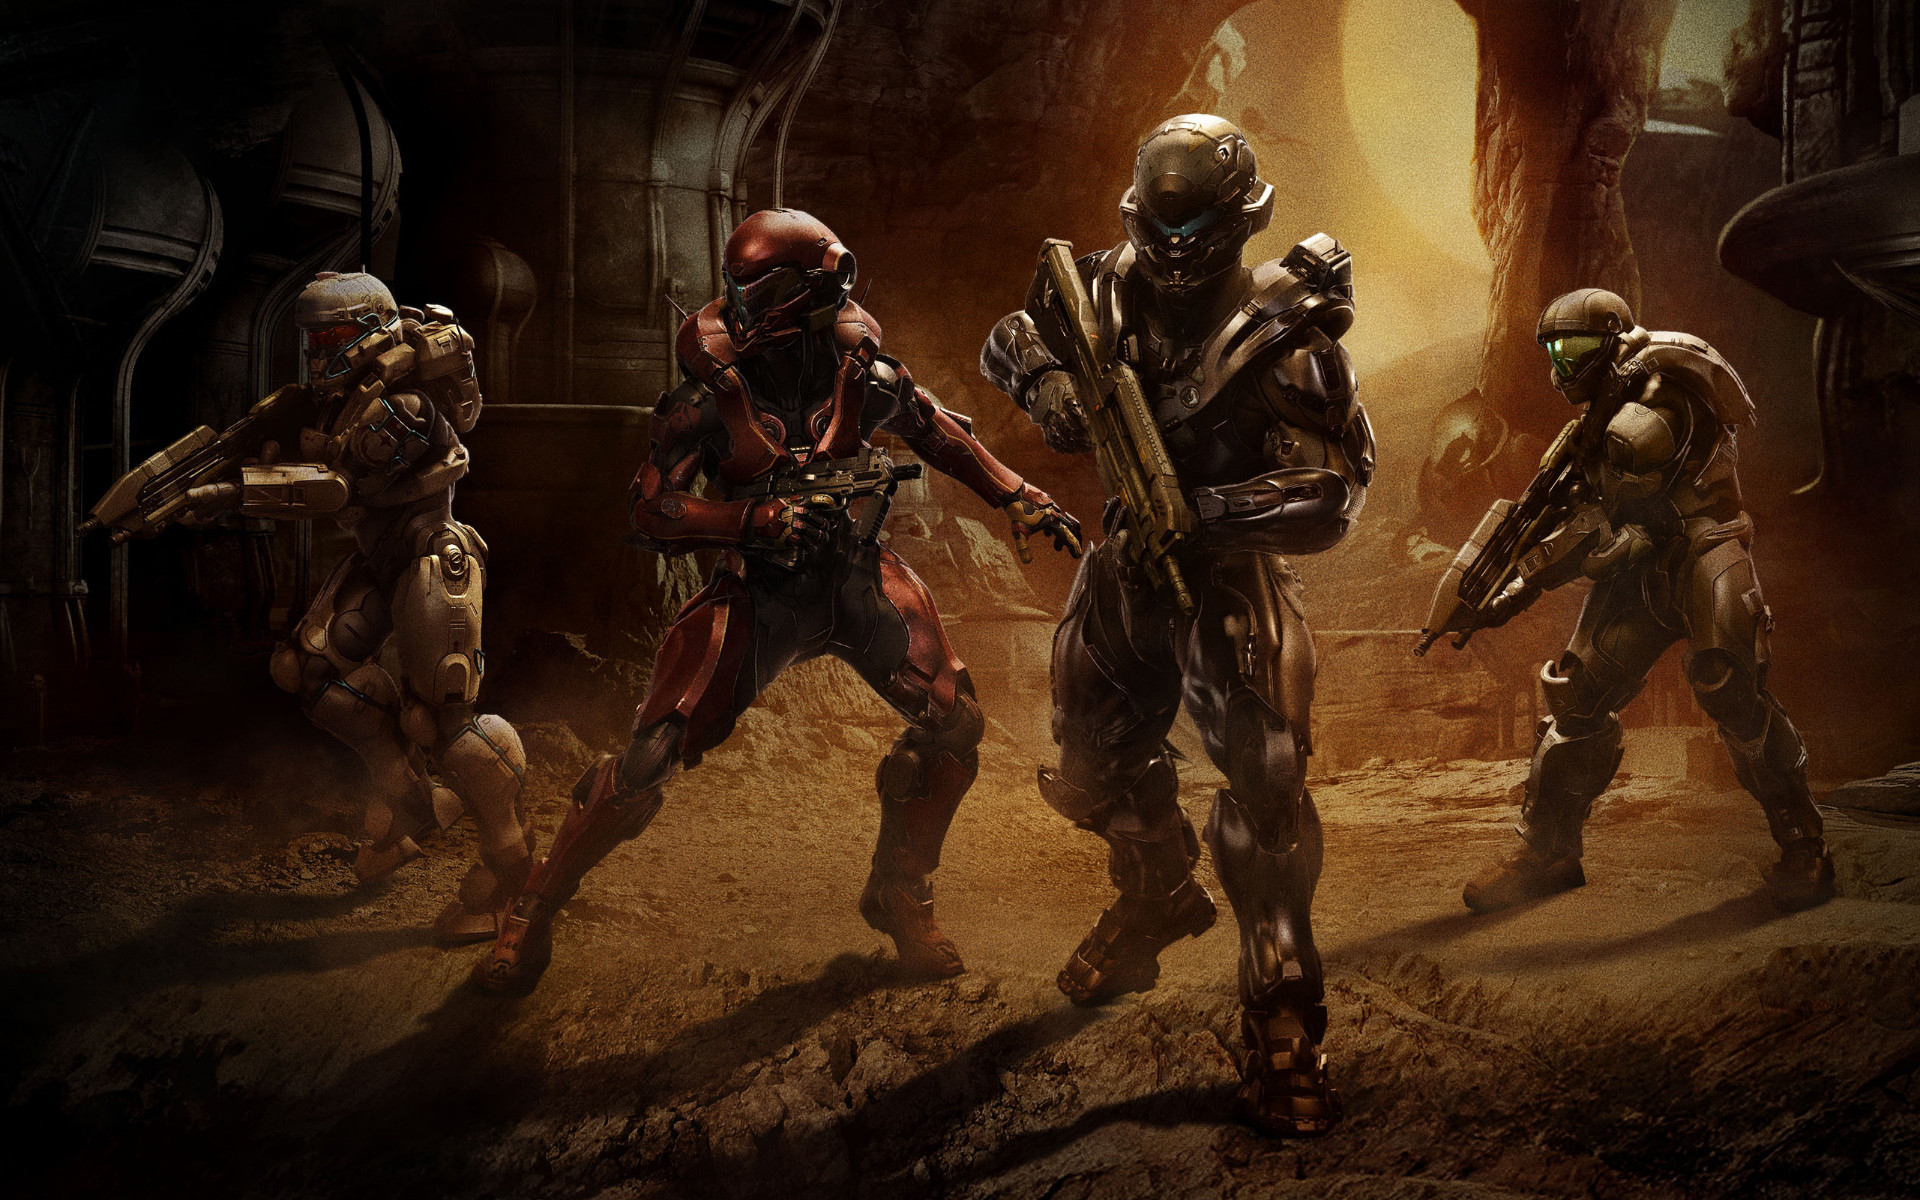 Watch The Halo 5: Guardians Official Launch Gameplay Trailer